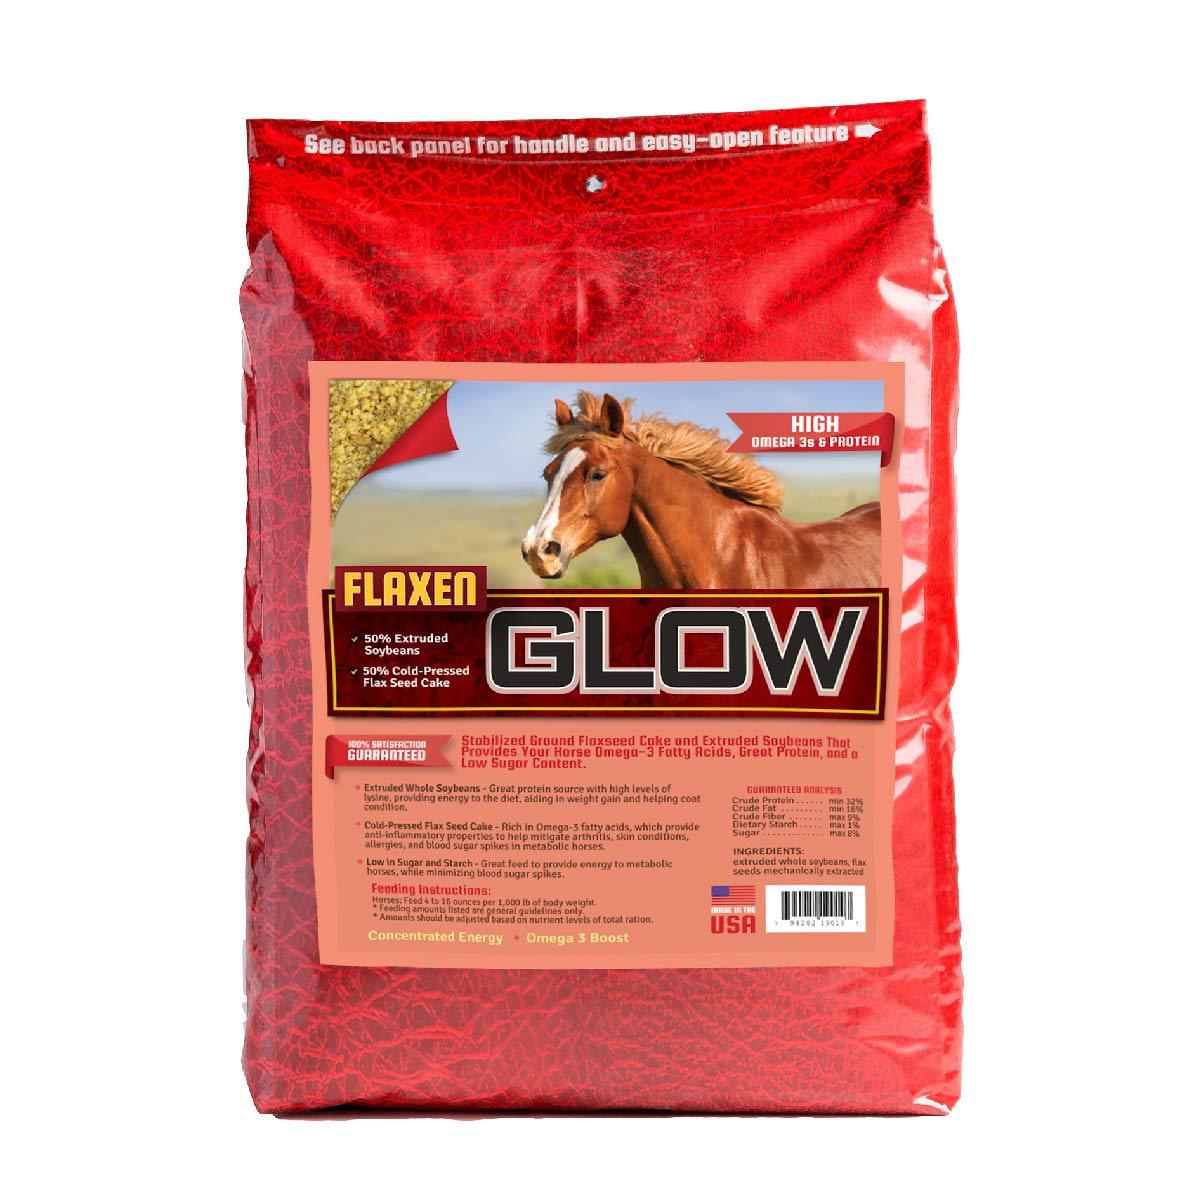 Glow Extruded Soybeans High-Fat Supplement 40 lbs Bag by Horse Guard